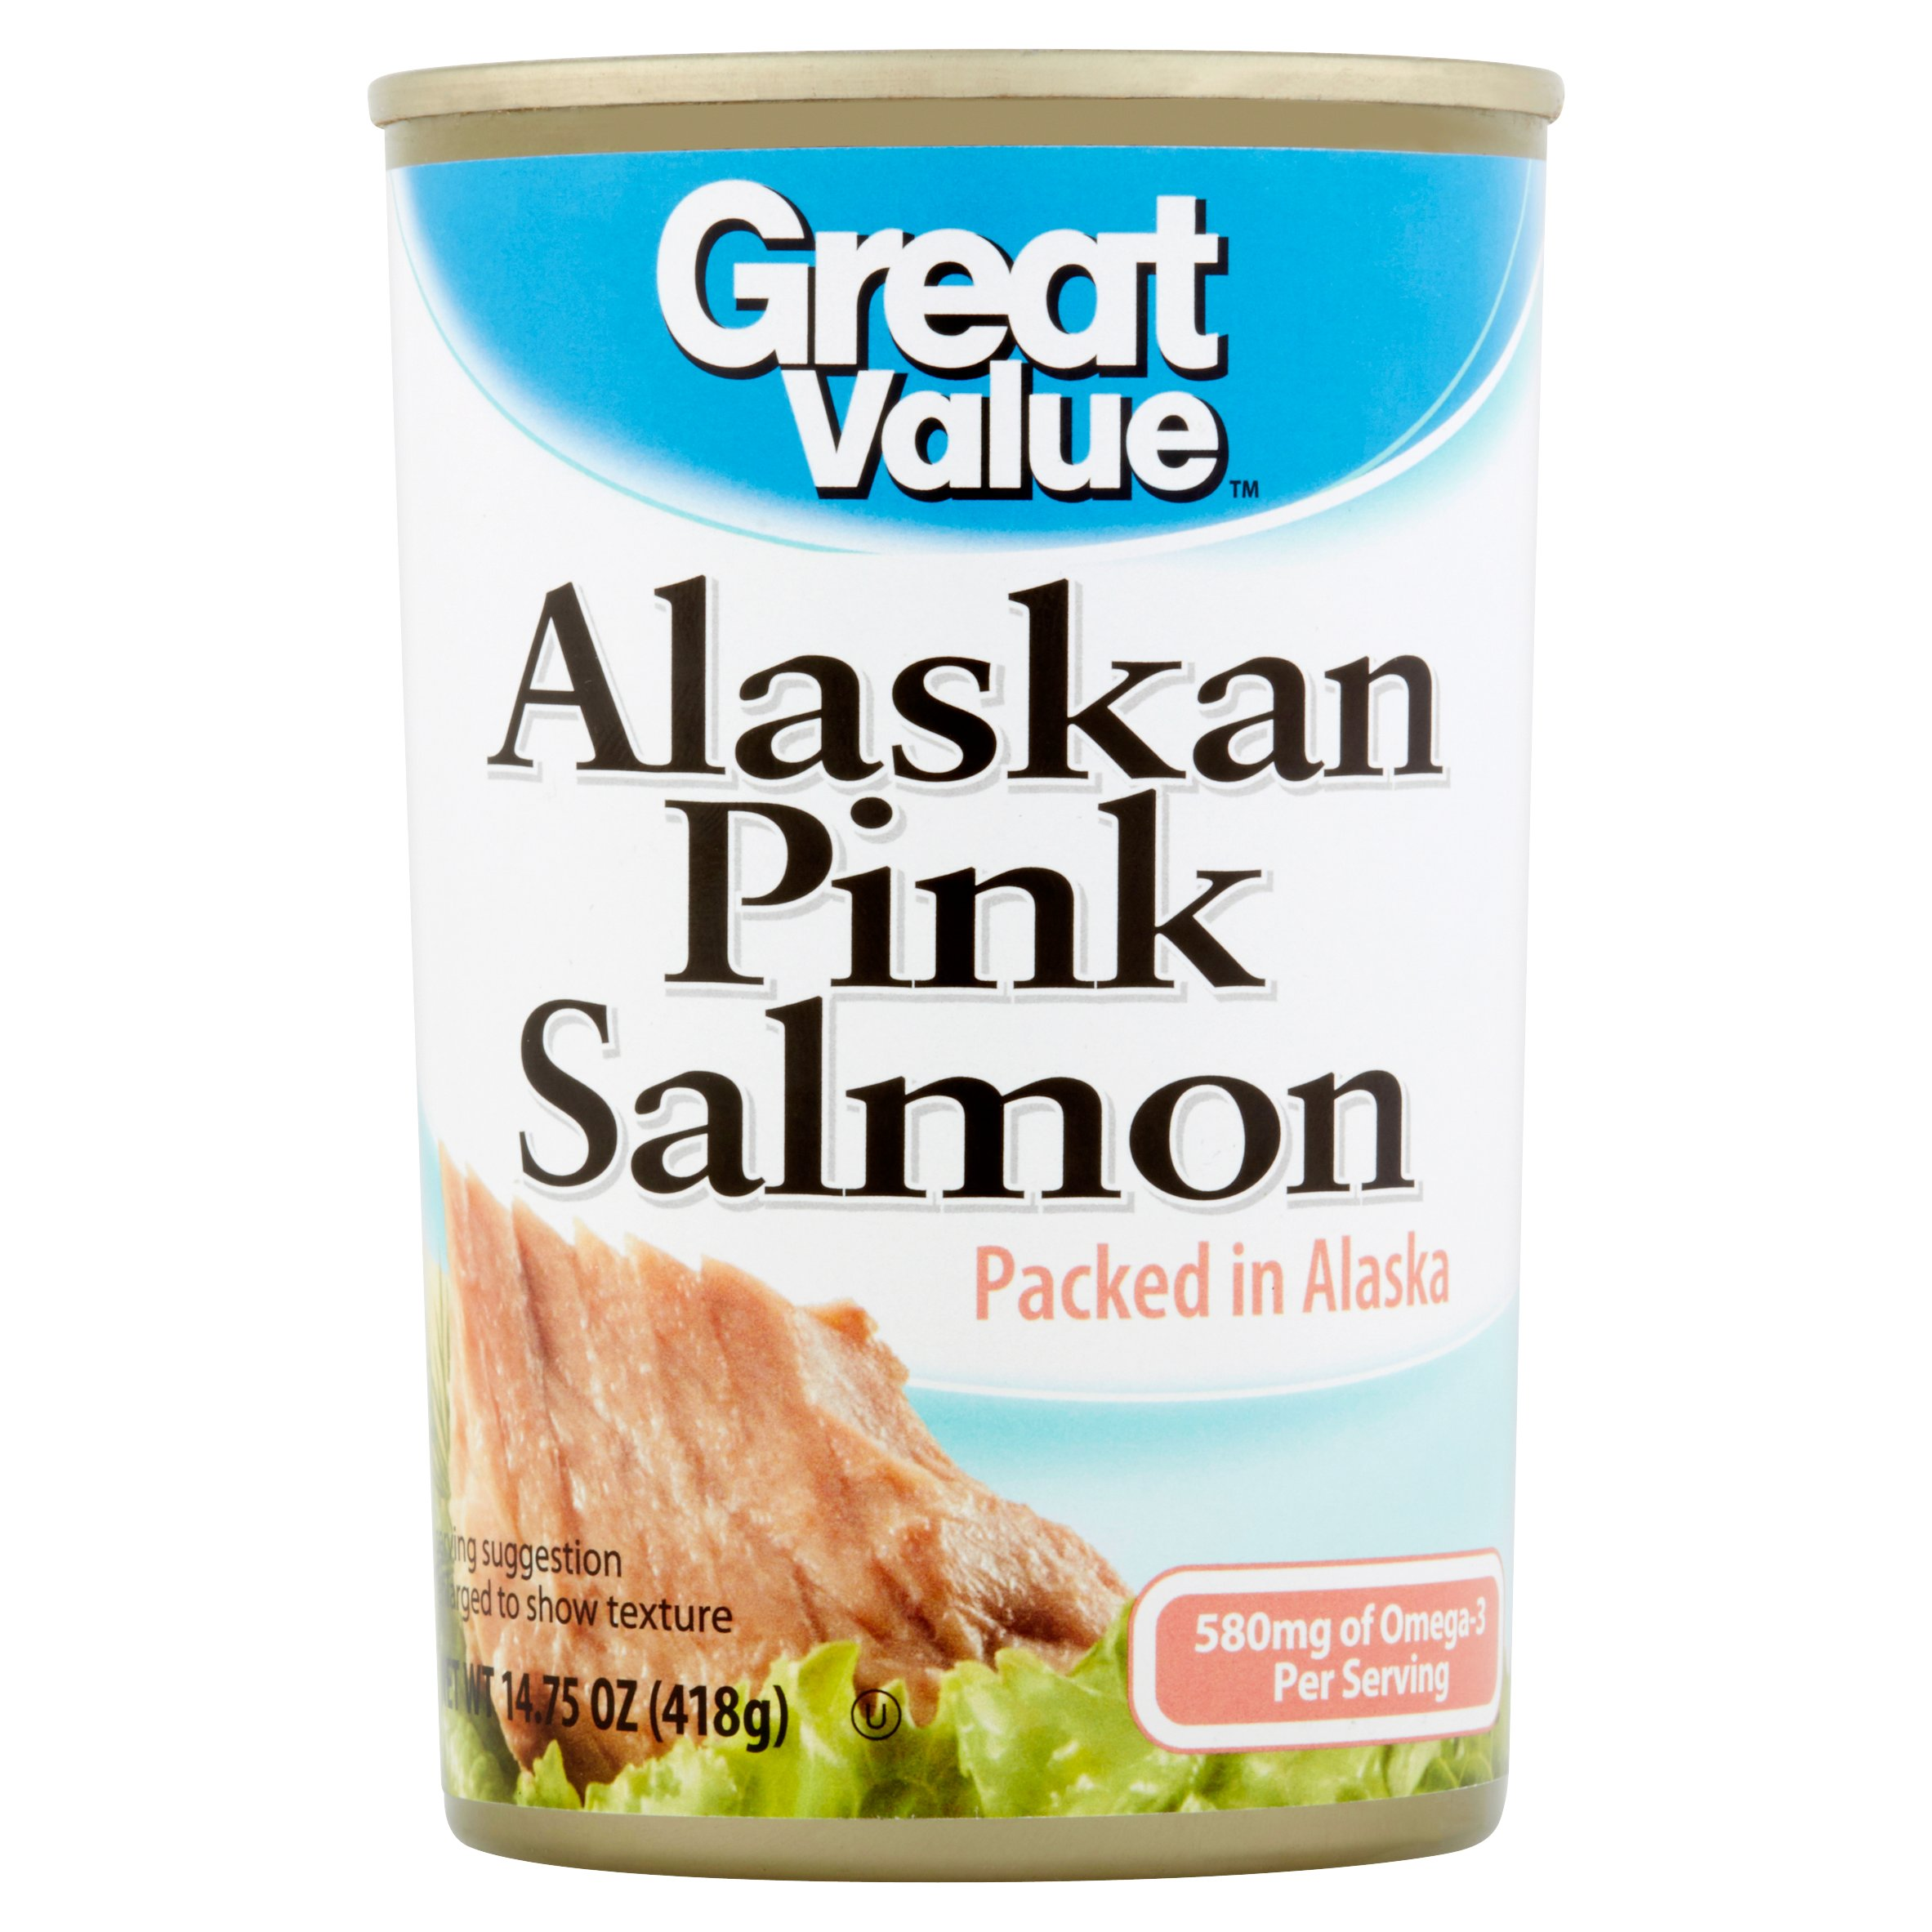 Great Value Alaskan Pink Salmon, 14.75 oz by Wal-Mart Stores, Inc.